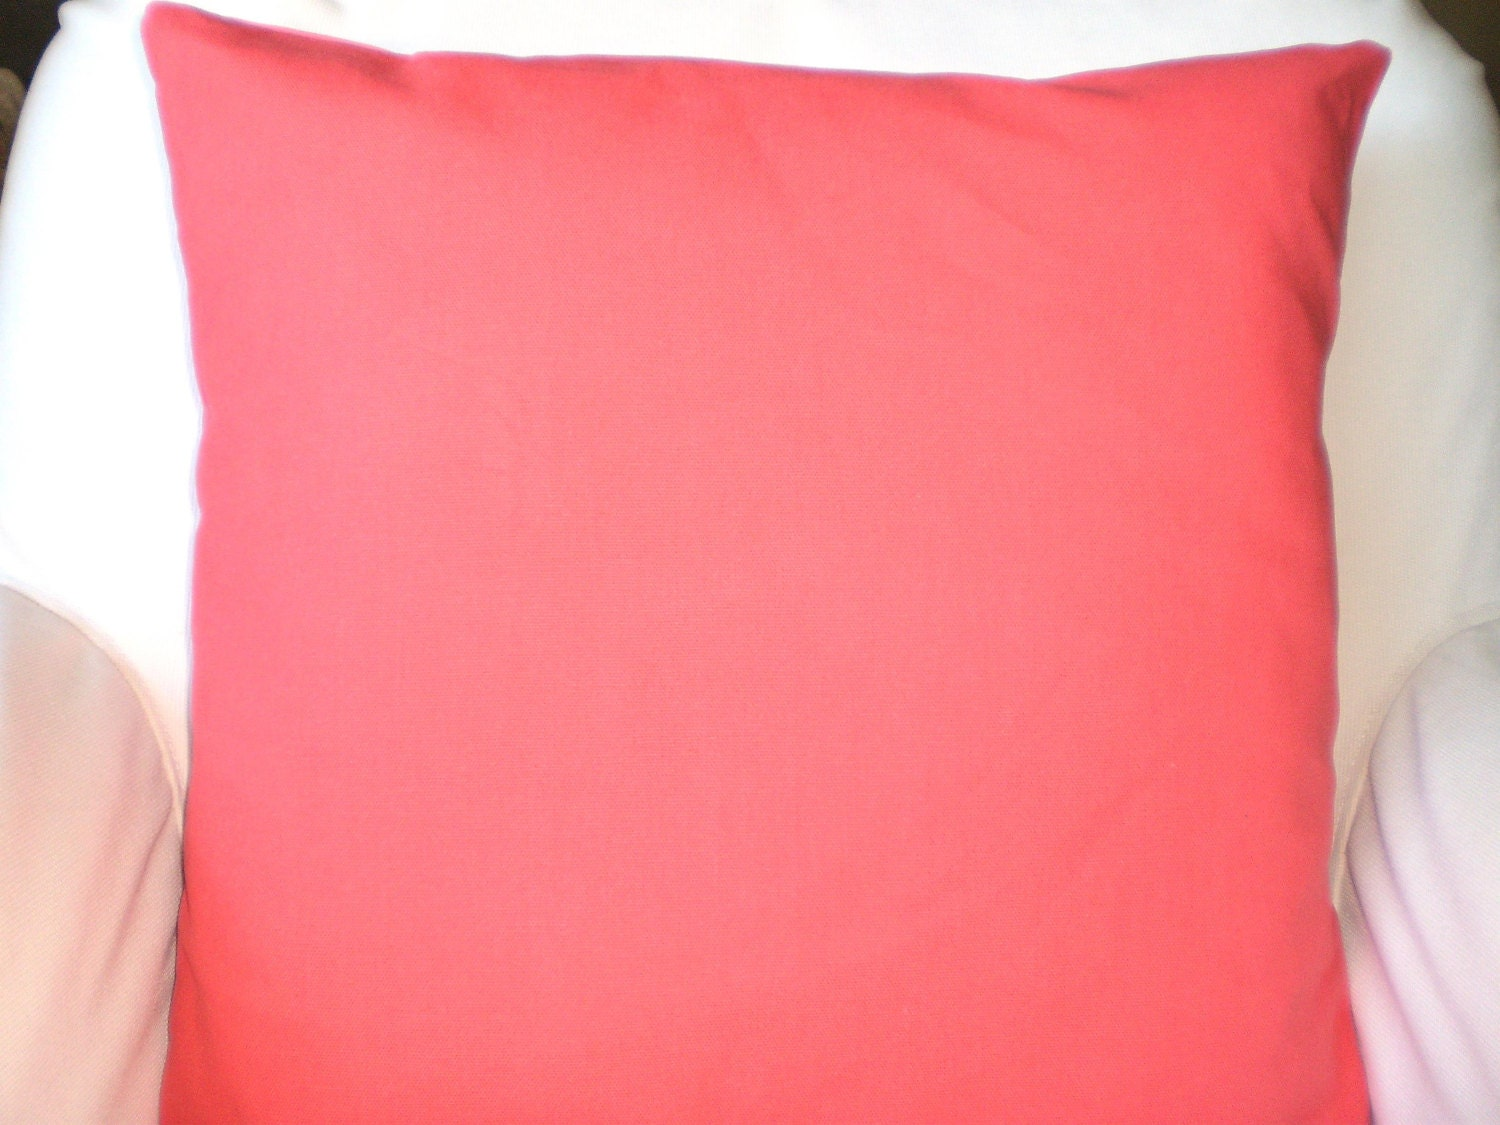 Solid Coral Throw Pillows : Solid Coral Pillow Covers Decorative Throw by FabricJunkie1640